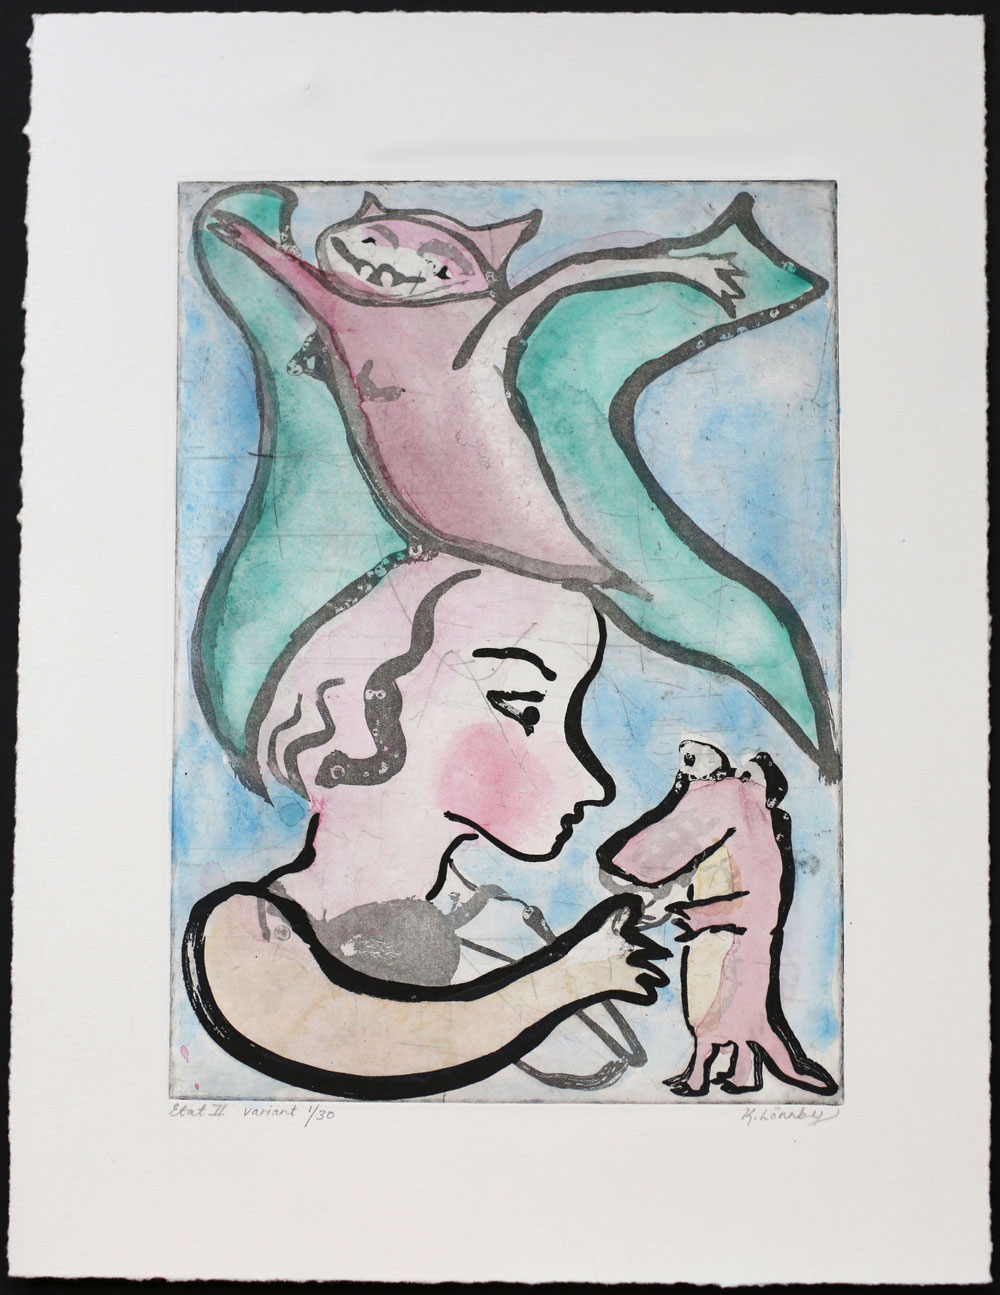 Self-portrait with Crocodile - Hand colored etching by Katarina Lönnby.